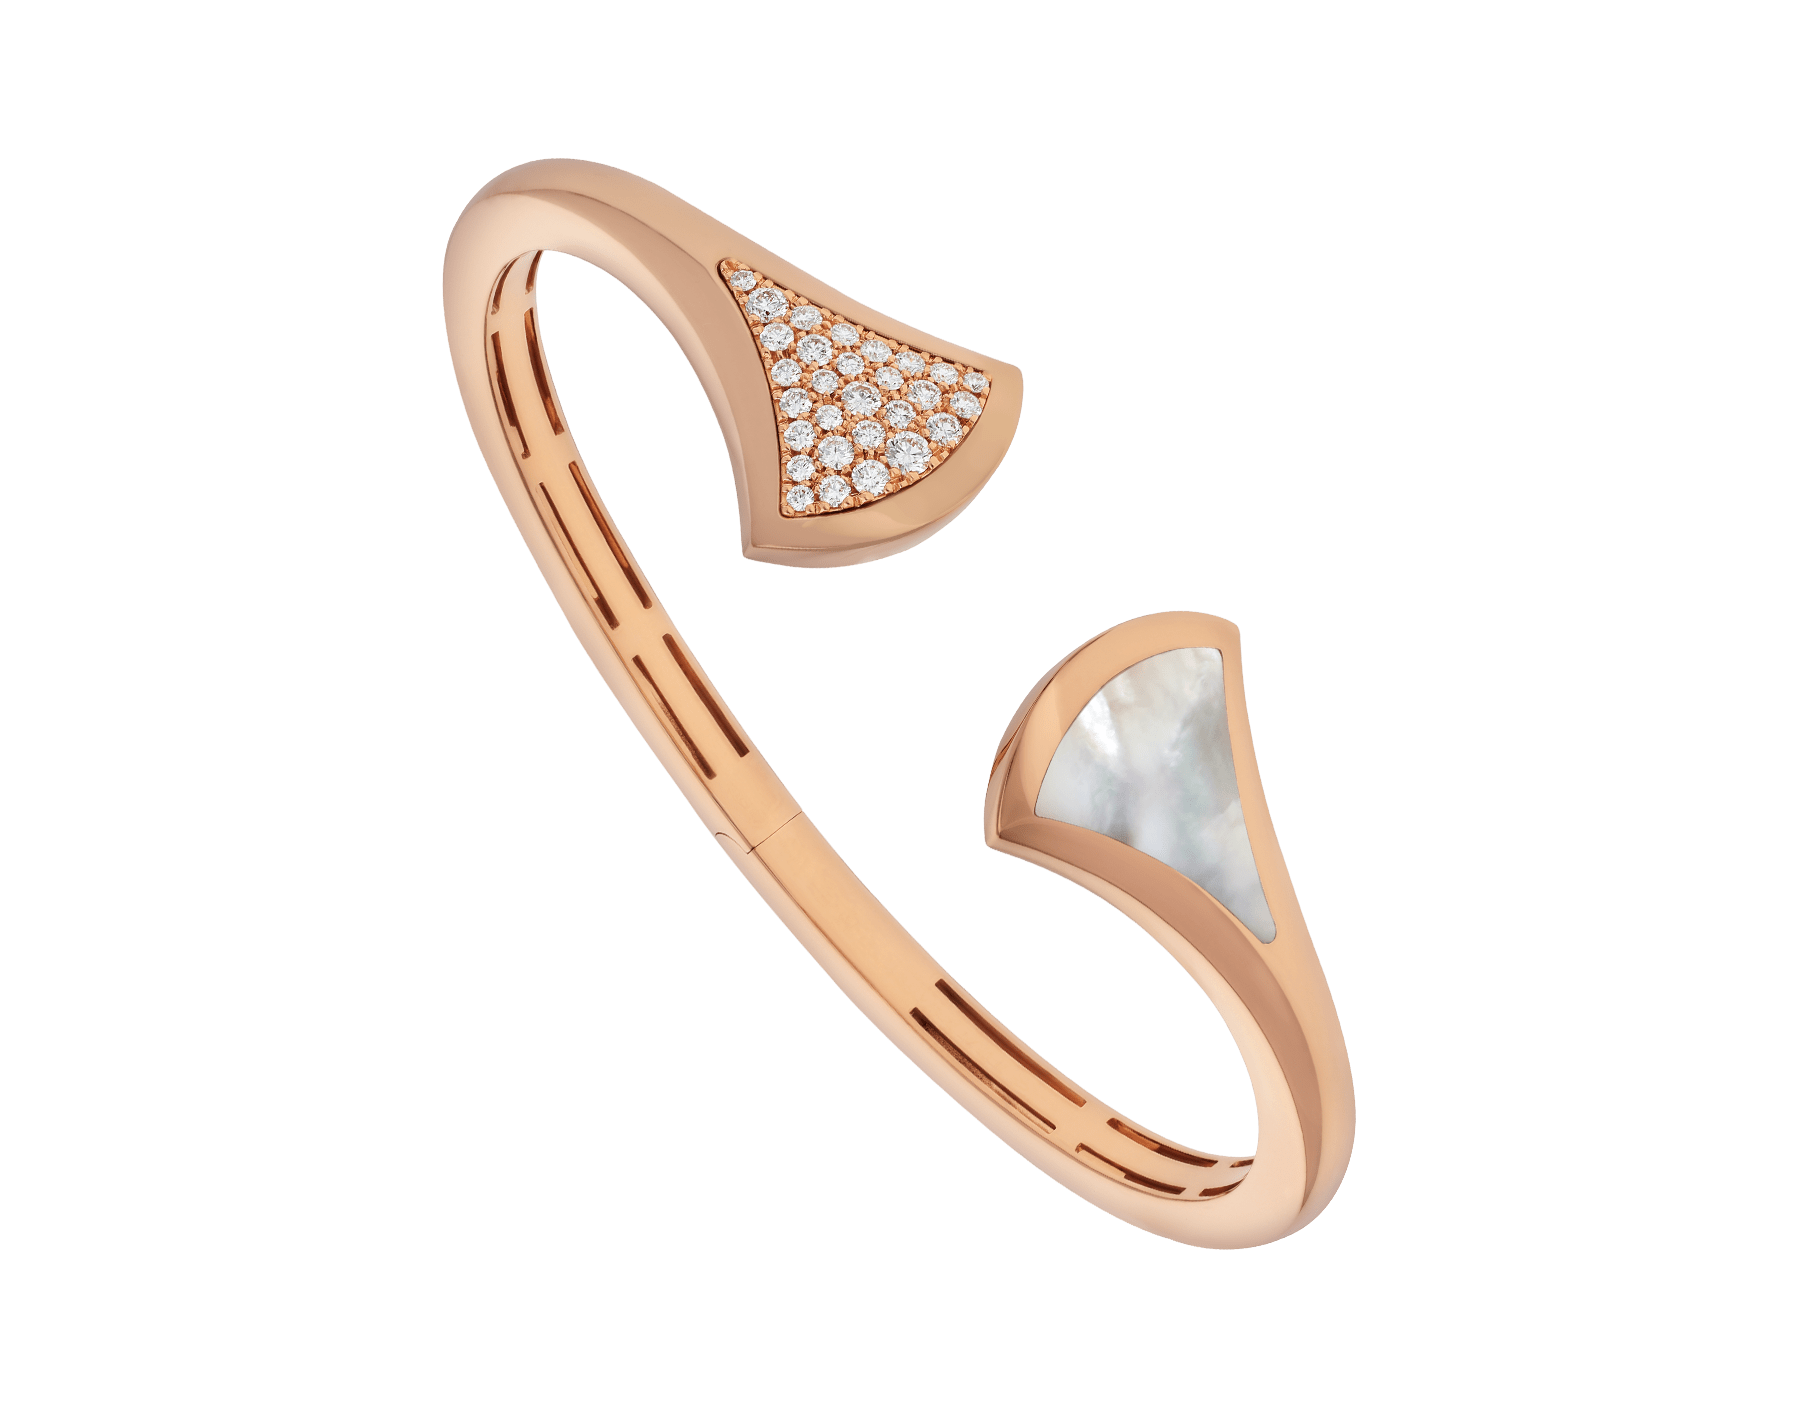 DIVAS' DREAM 18 kt rose gold cuff bracelet, set with mother-of-pearl and pavé diamonds. BR857370 image 1